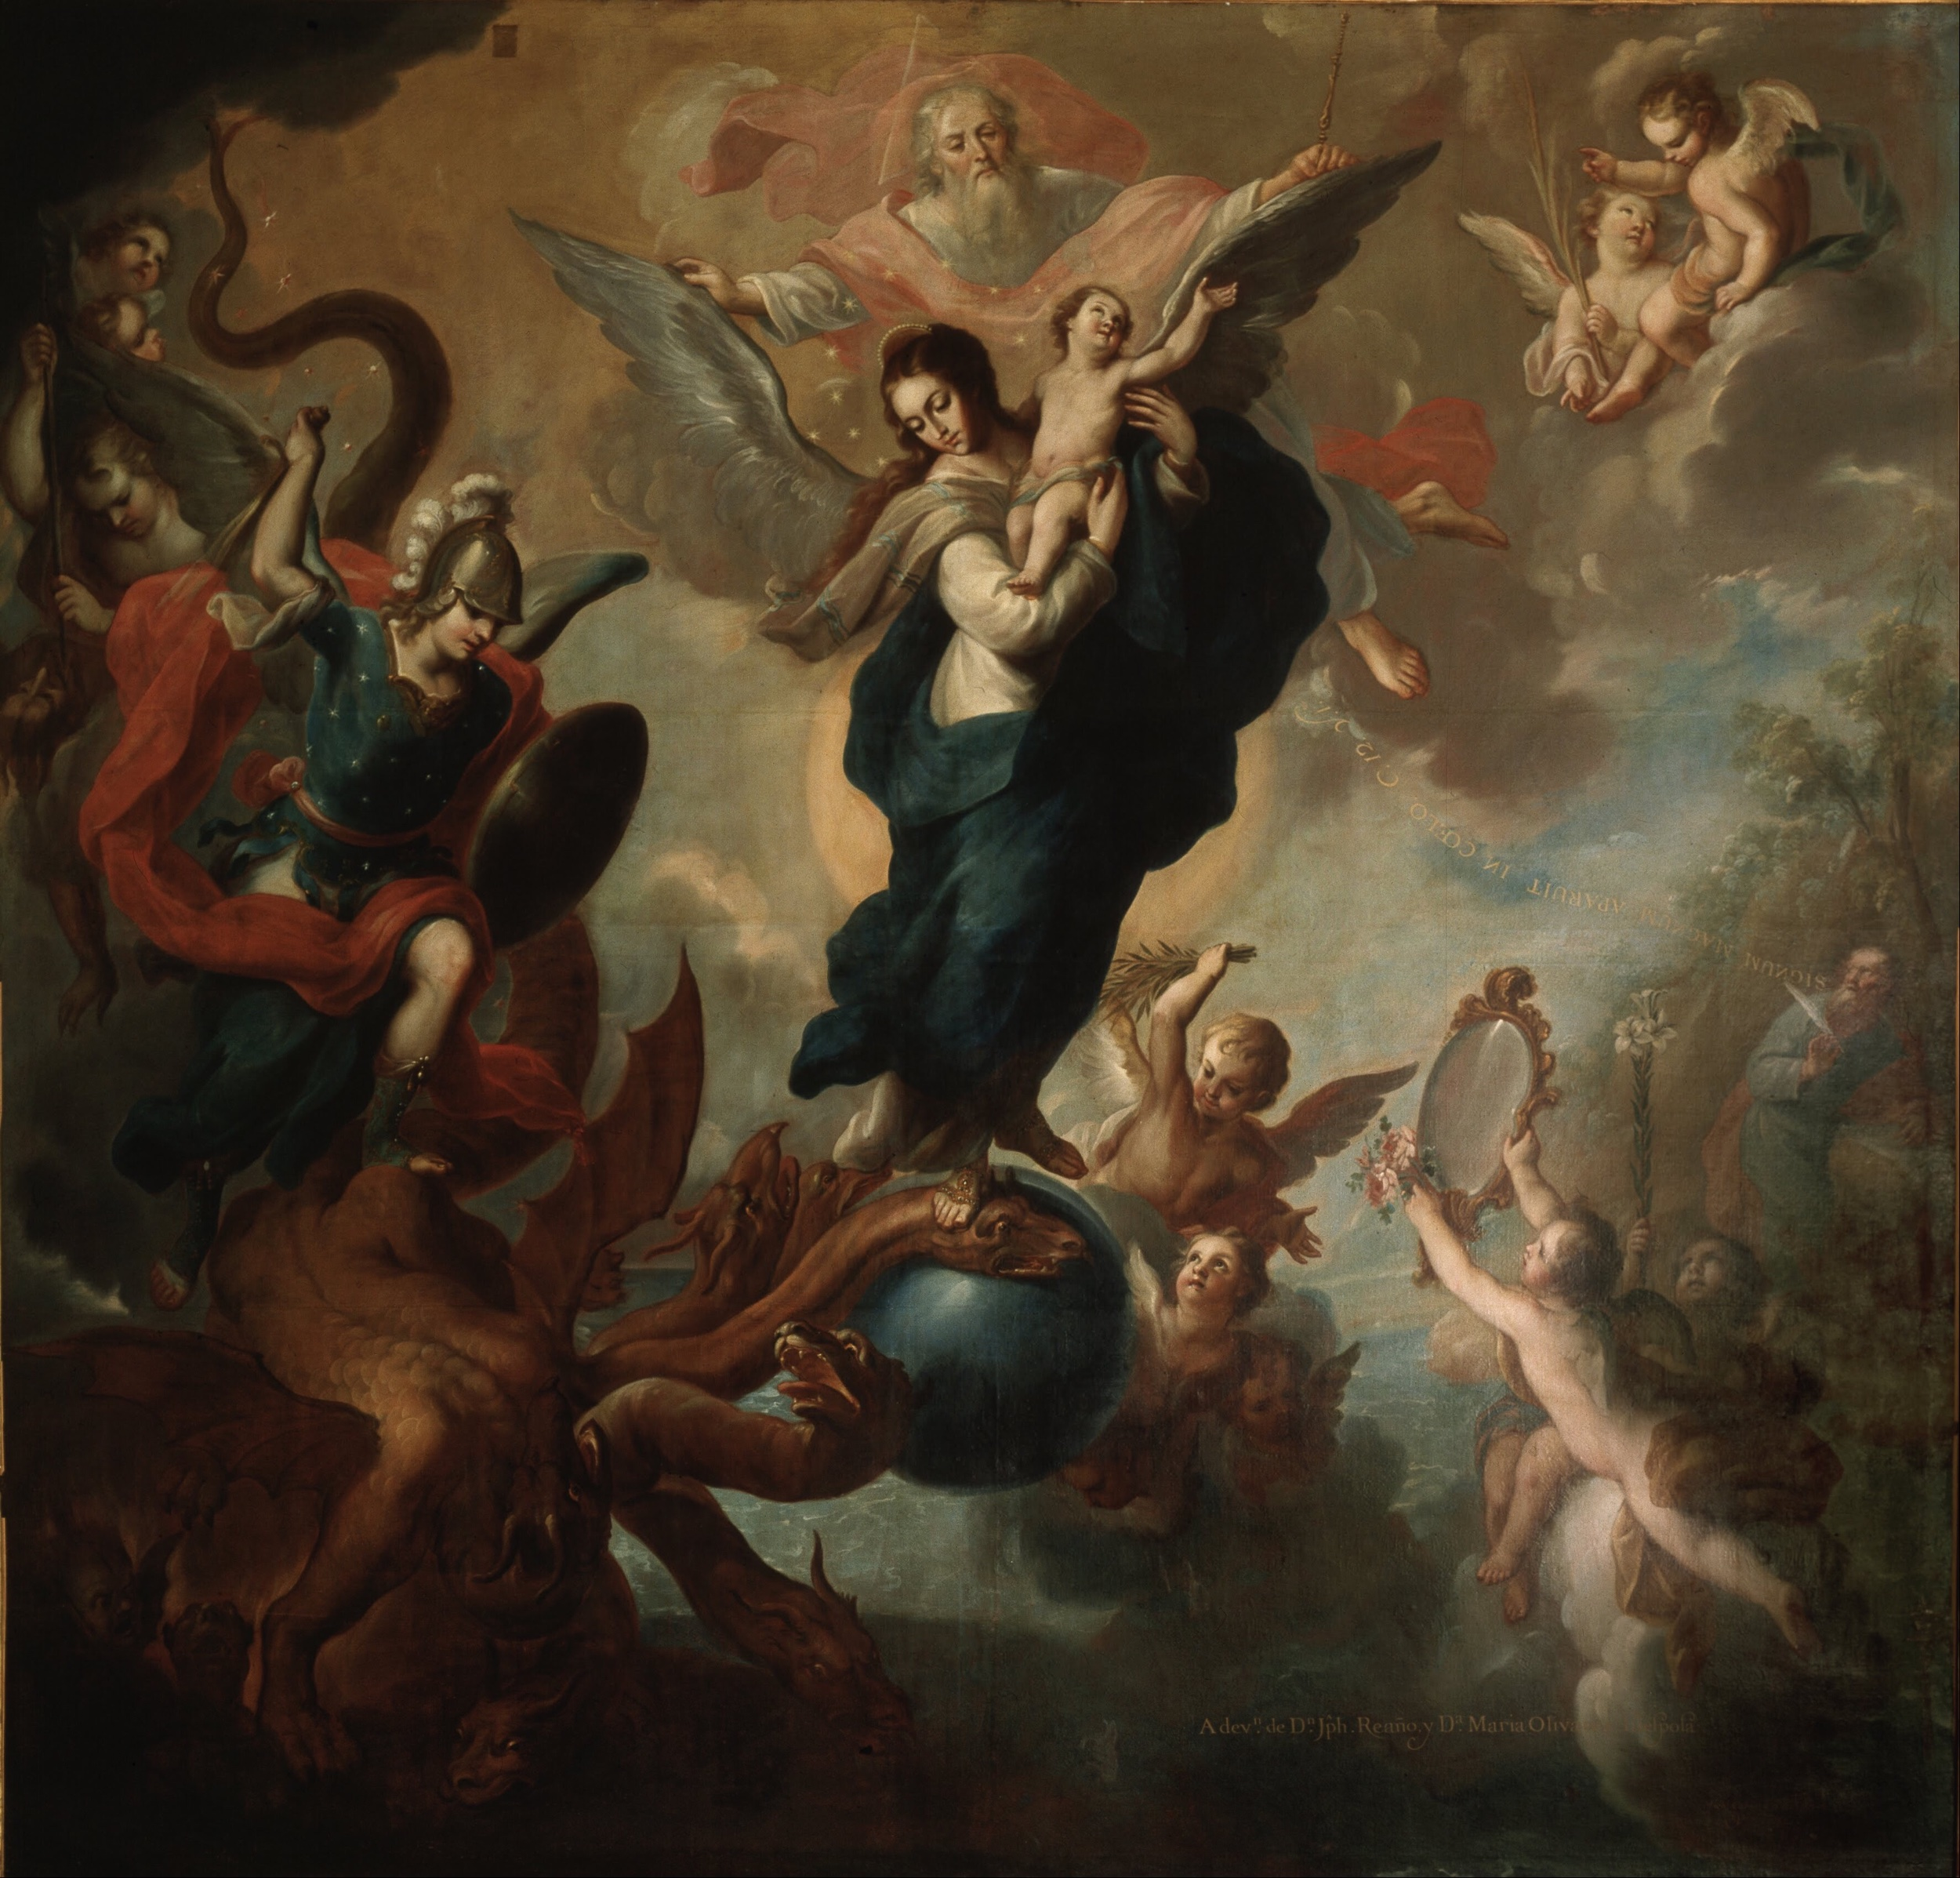 The Virgin of the Apocalypse by Miguel Cabrera. 1760. This work of art is in the public domain. {{PD}}